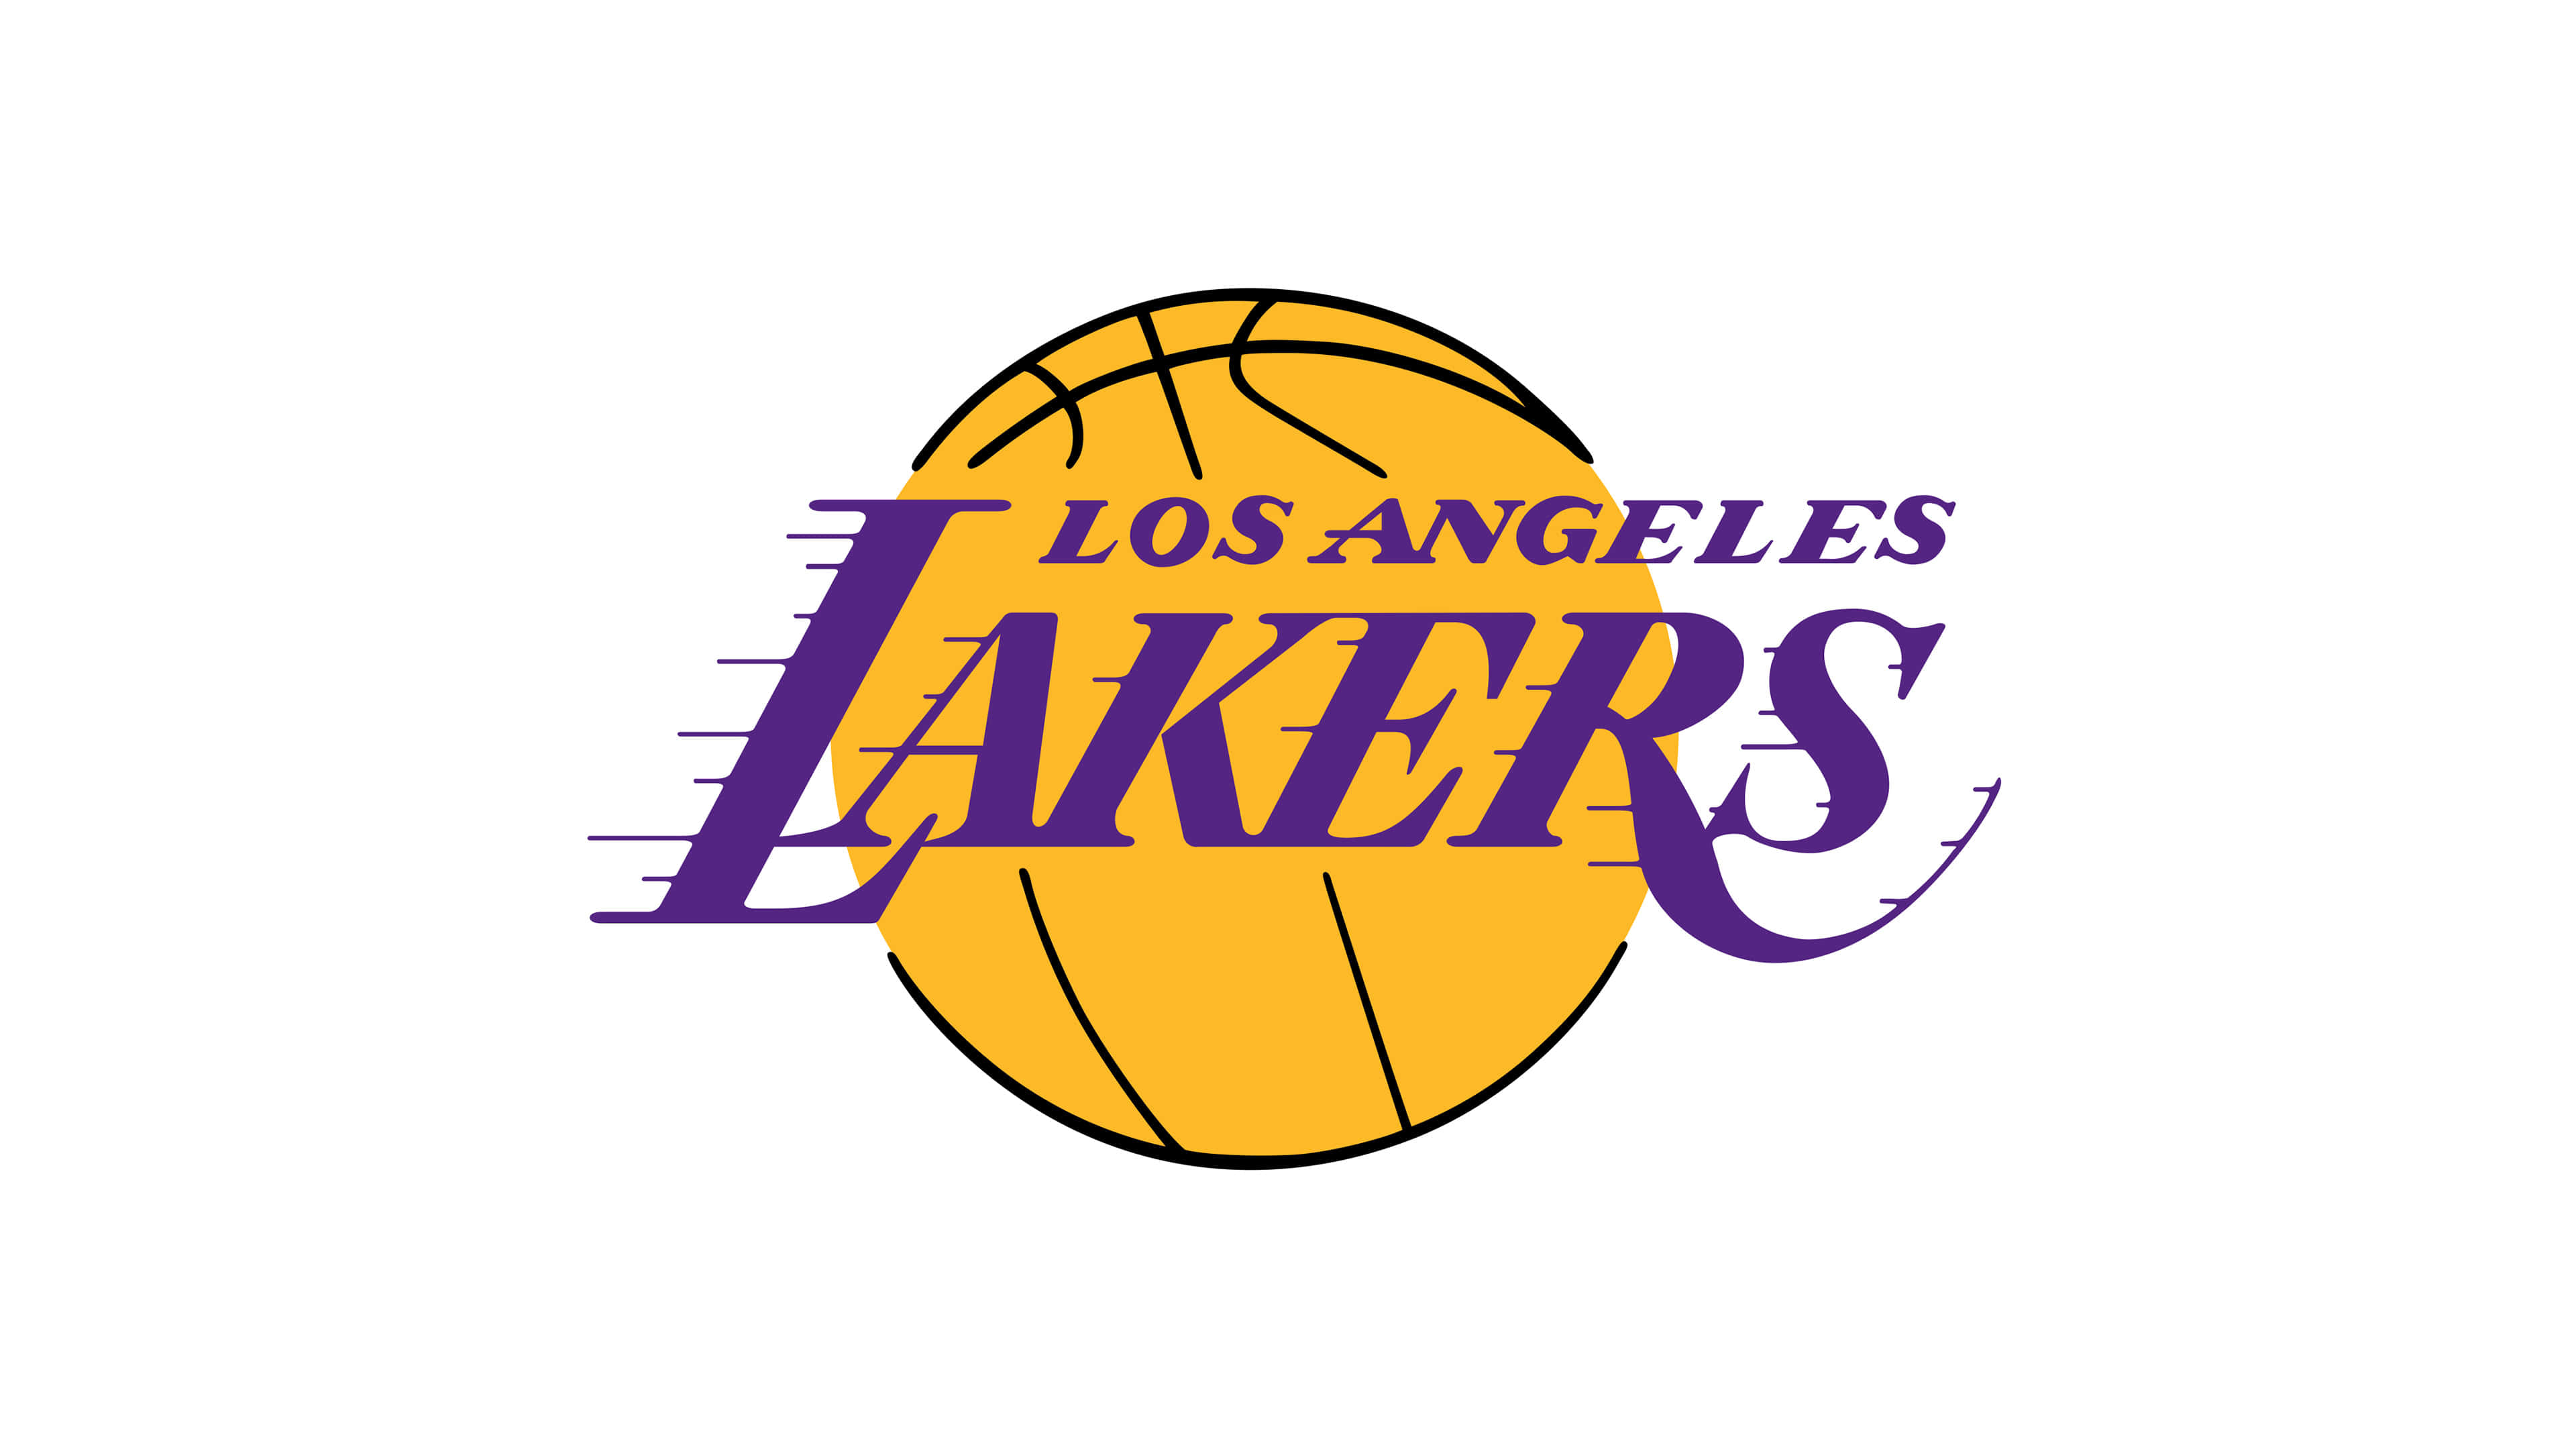 los angeles lakers nba logo uhd 4k wallpaper